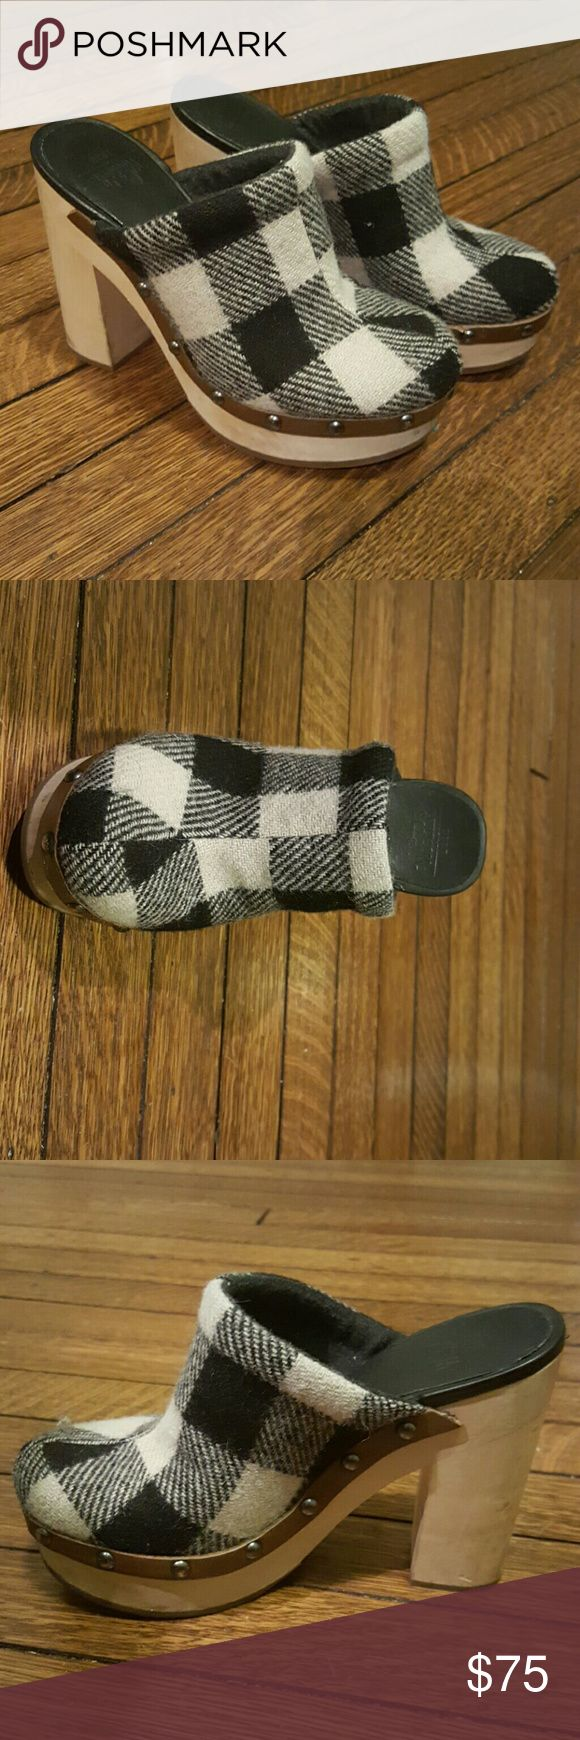 """Woolrich Journalist platform Mule/clog Black and white plaid wool clogs with studded leather detail on a chunky 5"""" platform heel.  Comes with original box,  only worn a few times Woolrich Shoes Mules & Clogs"""